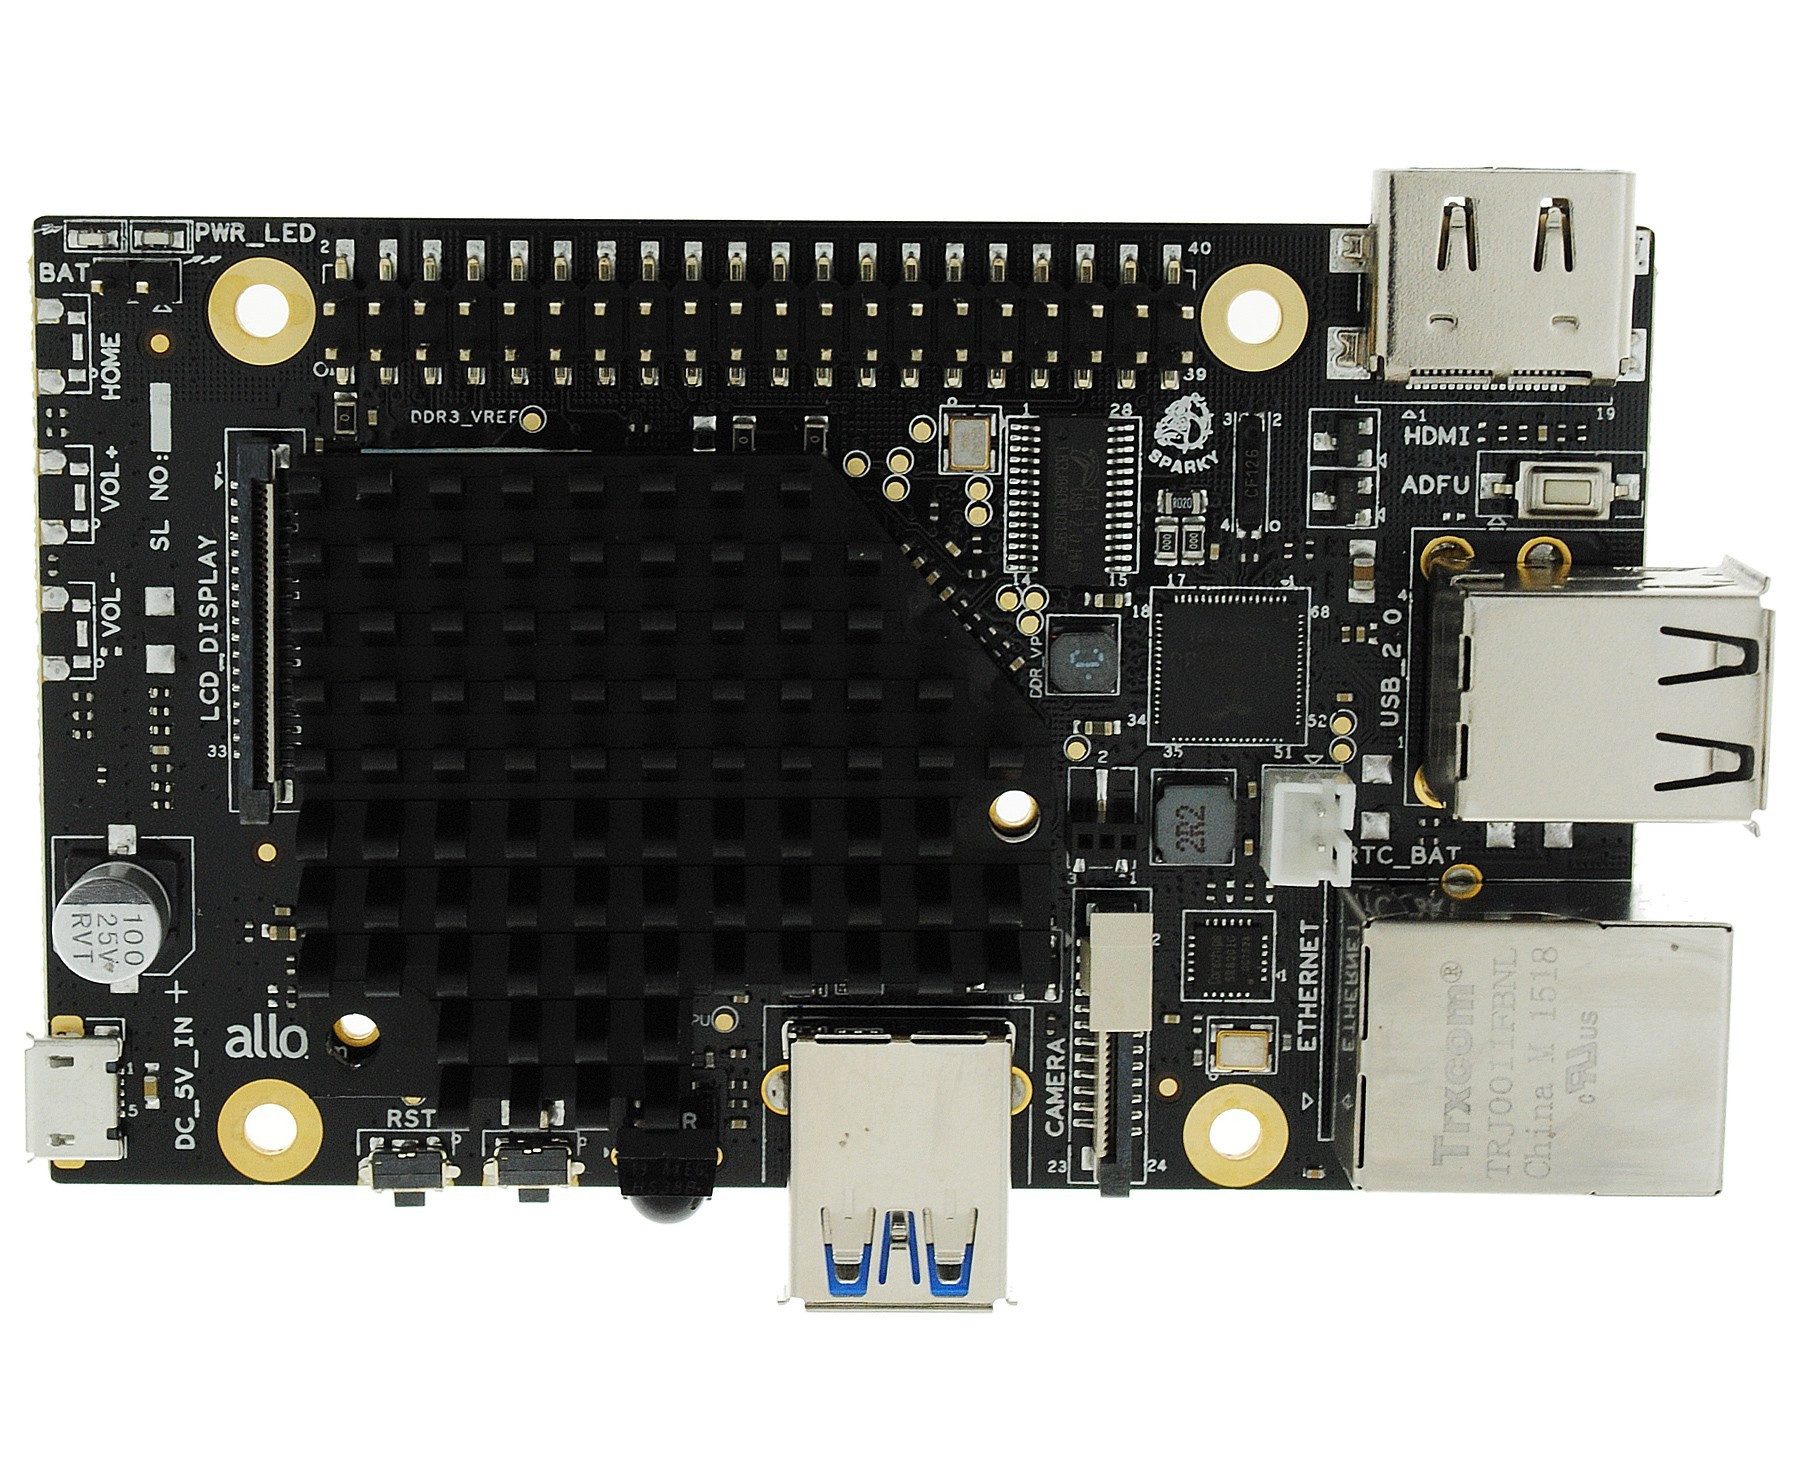 Sparky Sbc Motherboard Buy Integrated Electronics Analog And Digital Circuits Systems 2